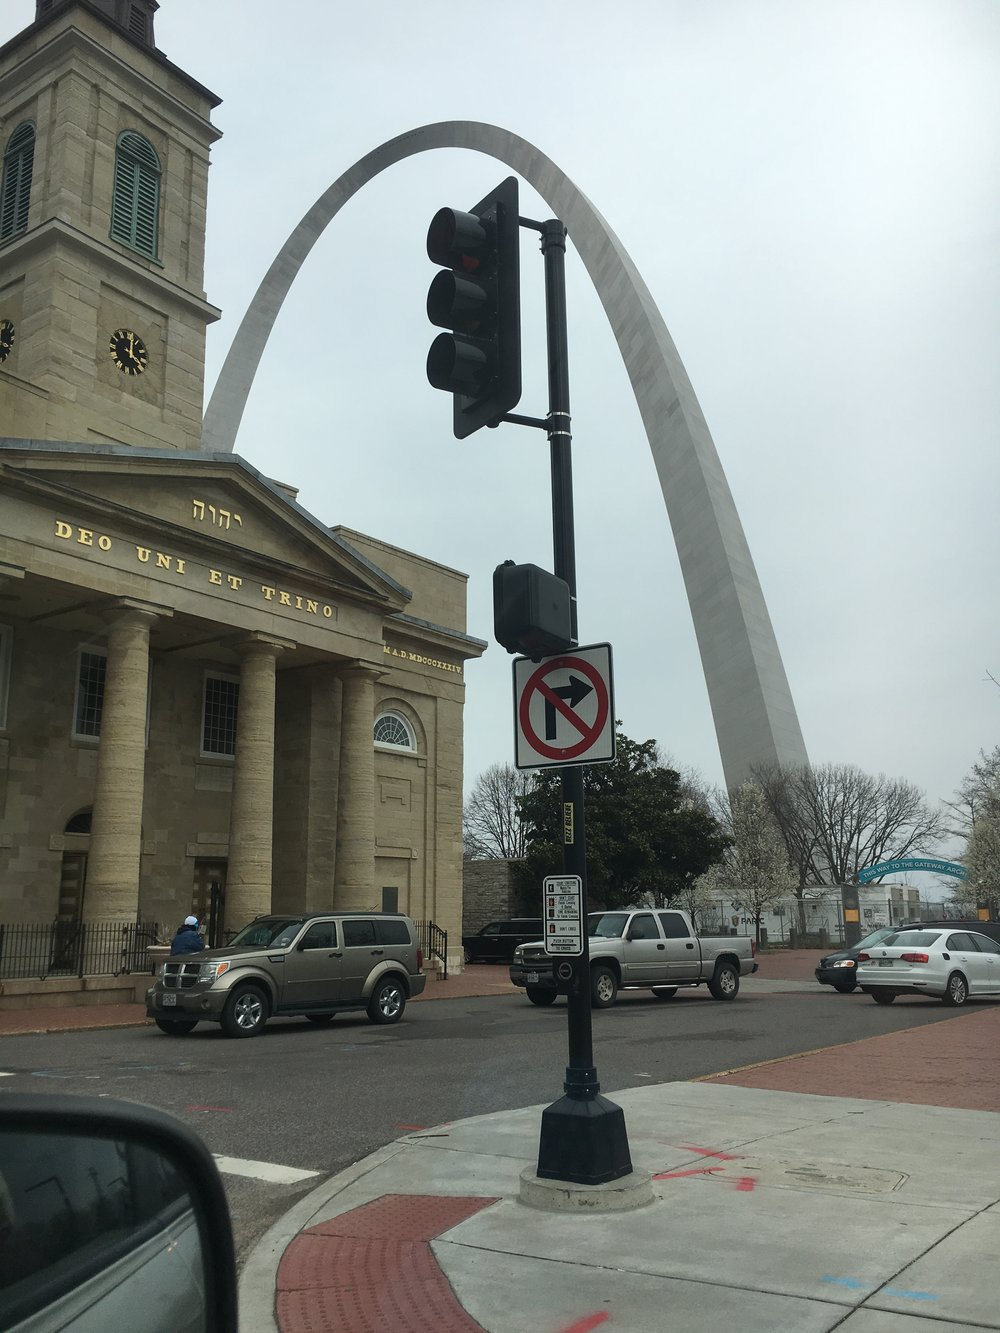 St. Louis, as seen from our car while trying to navigate traffic.